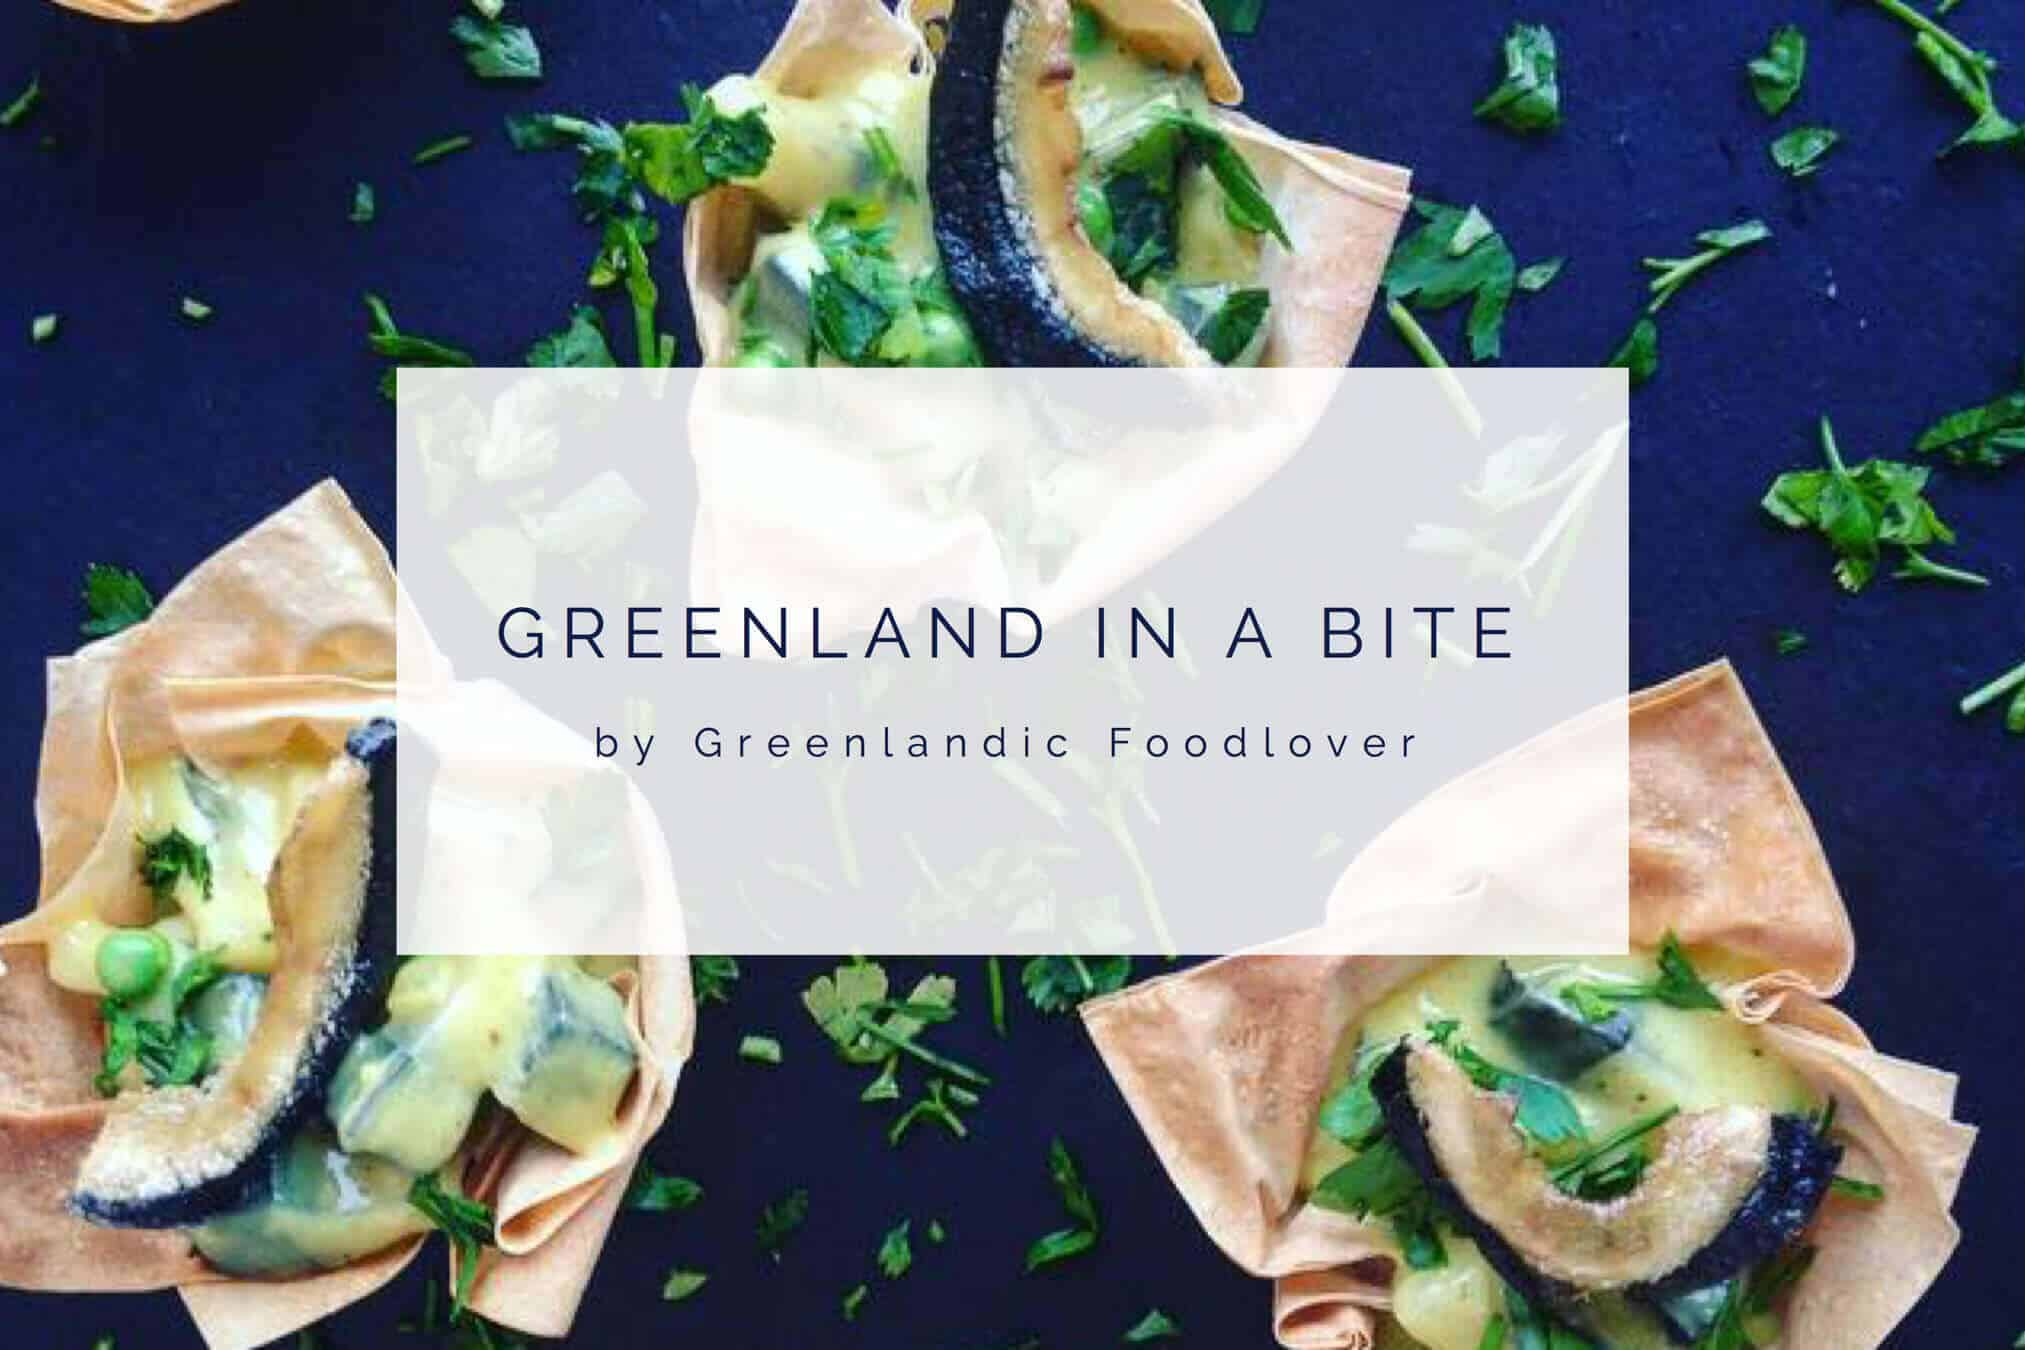 """Greenland in a bite"" by Greenlandic Foodlover"